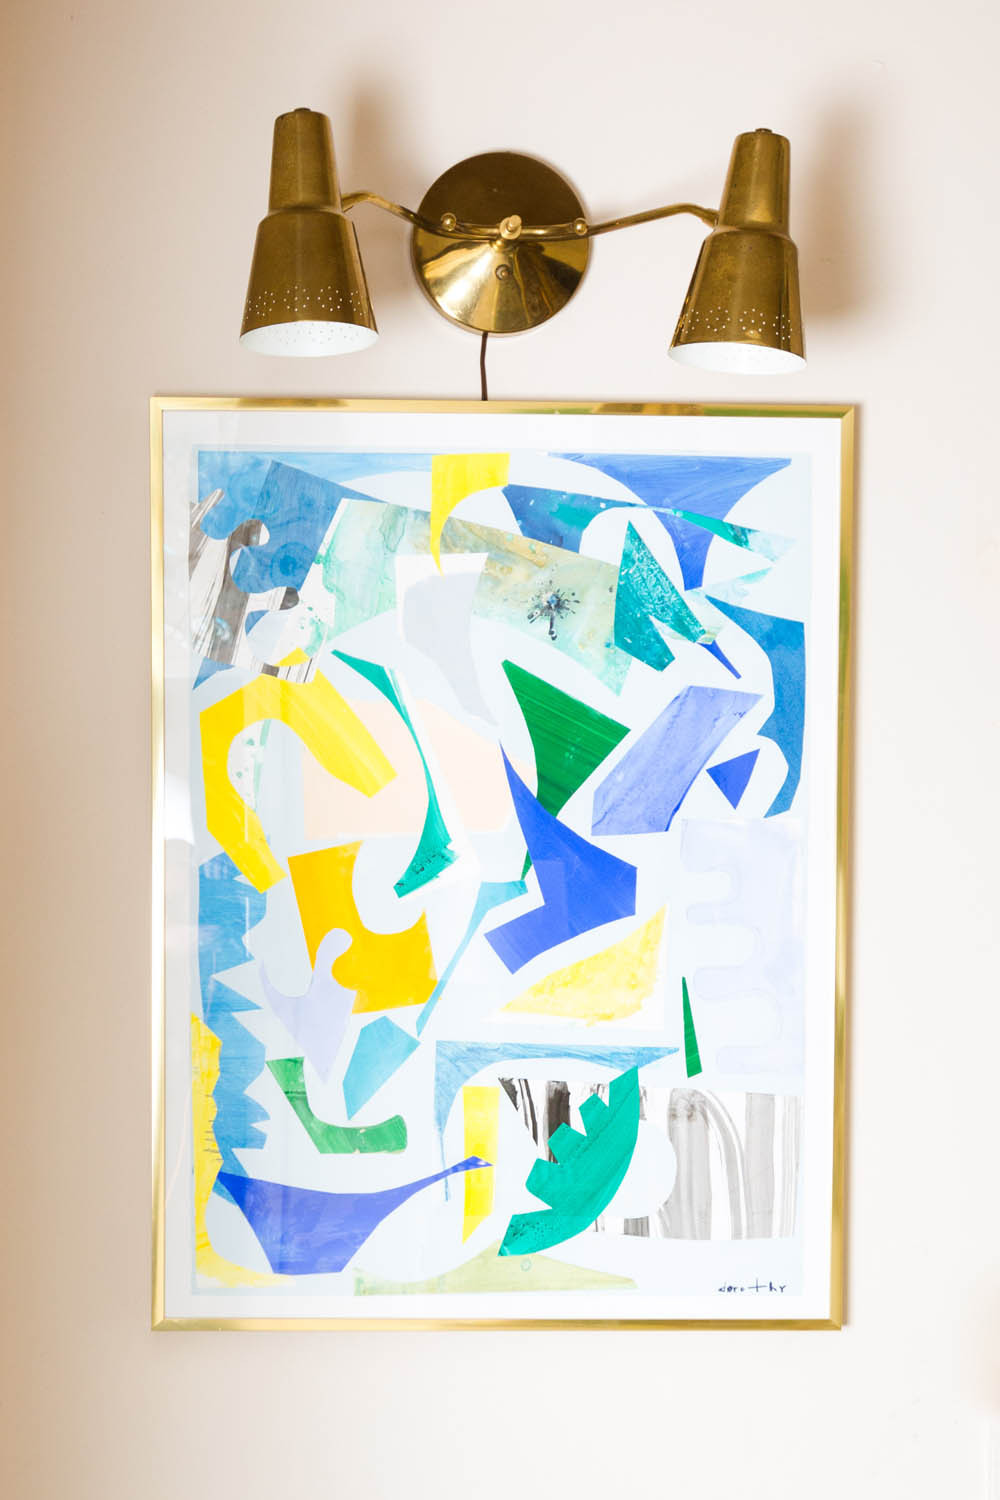 Image of dorothy shain art in home by interior designer by photographers in greenville sc